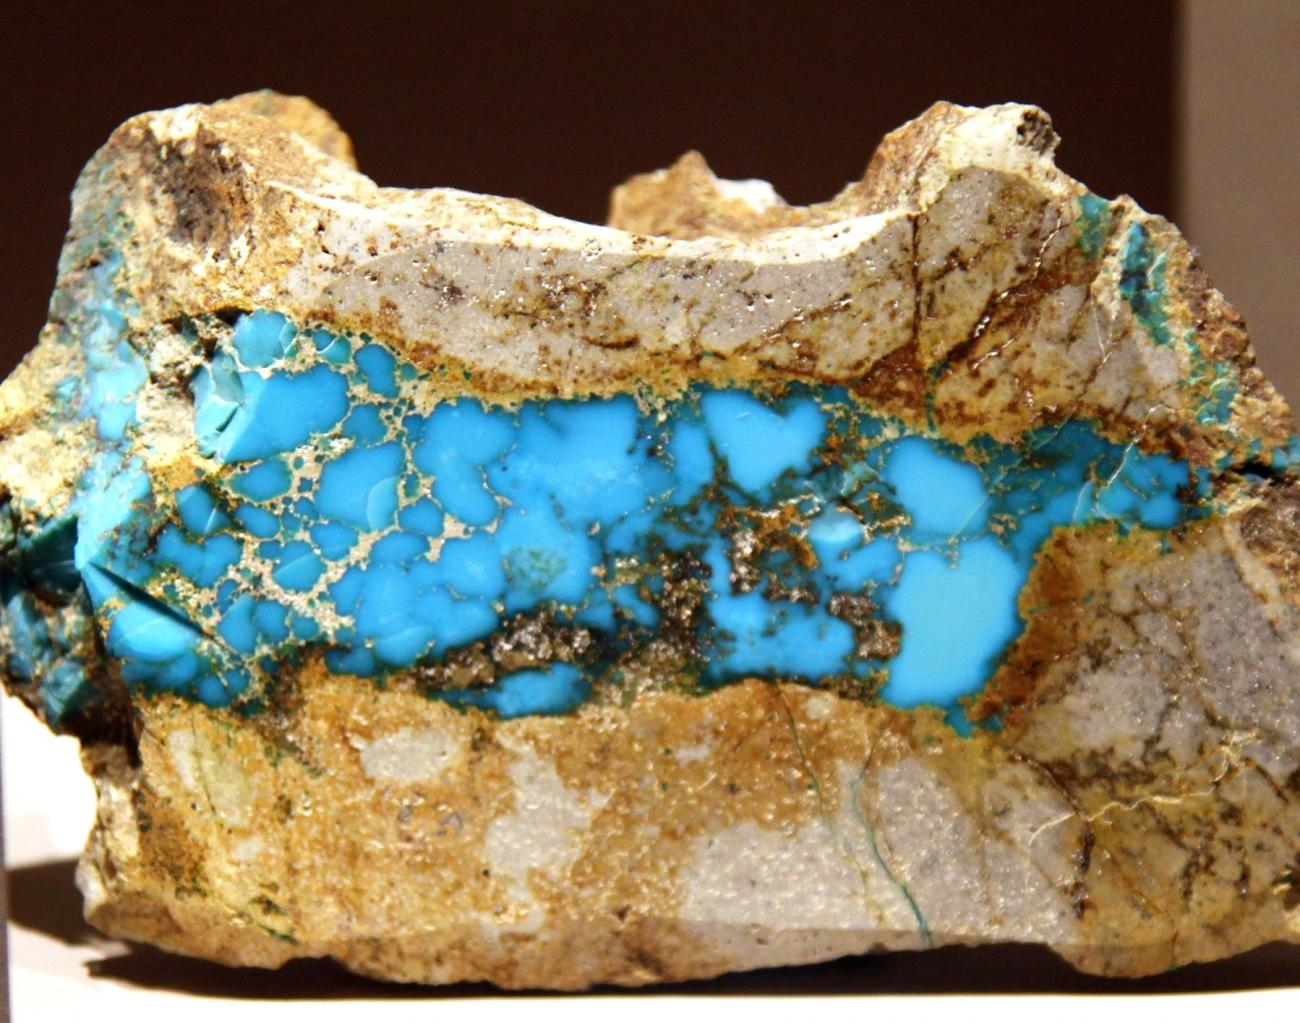 Turquoise-December birthstone-primary 2048x1449px-tim evanson, wikimedia credit